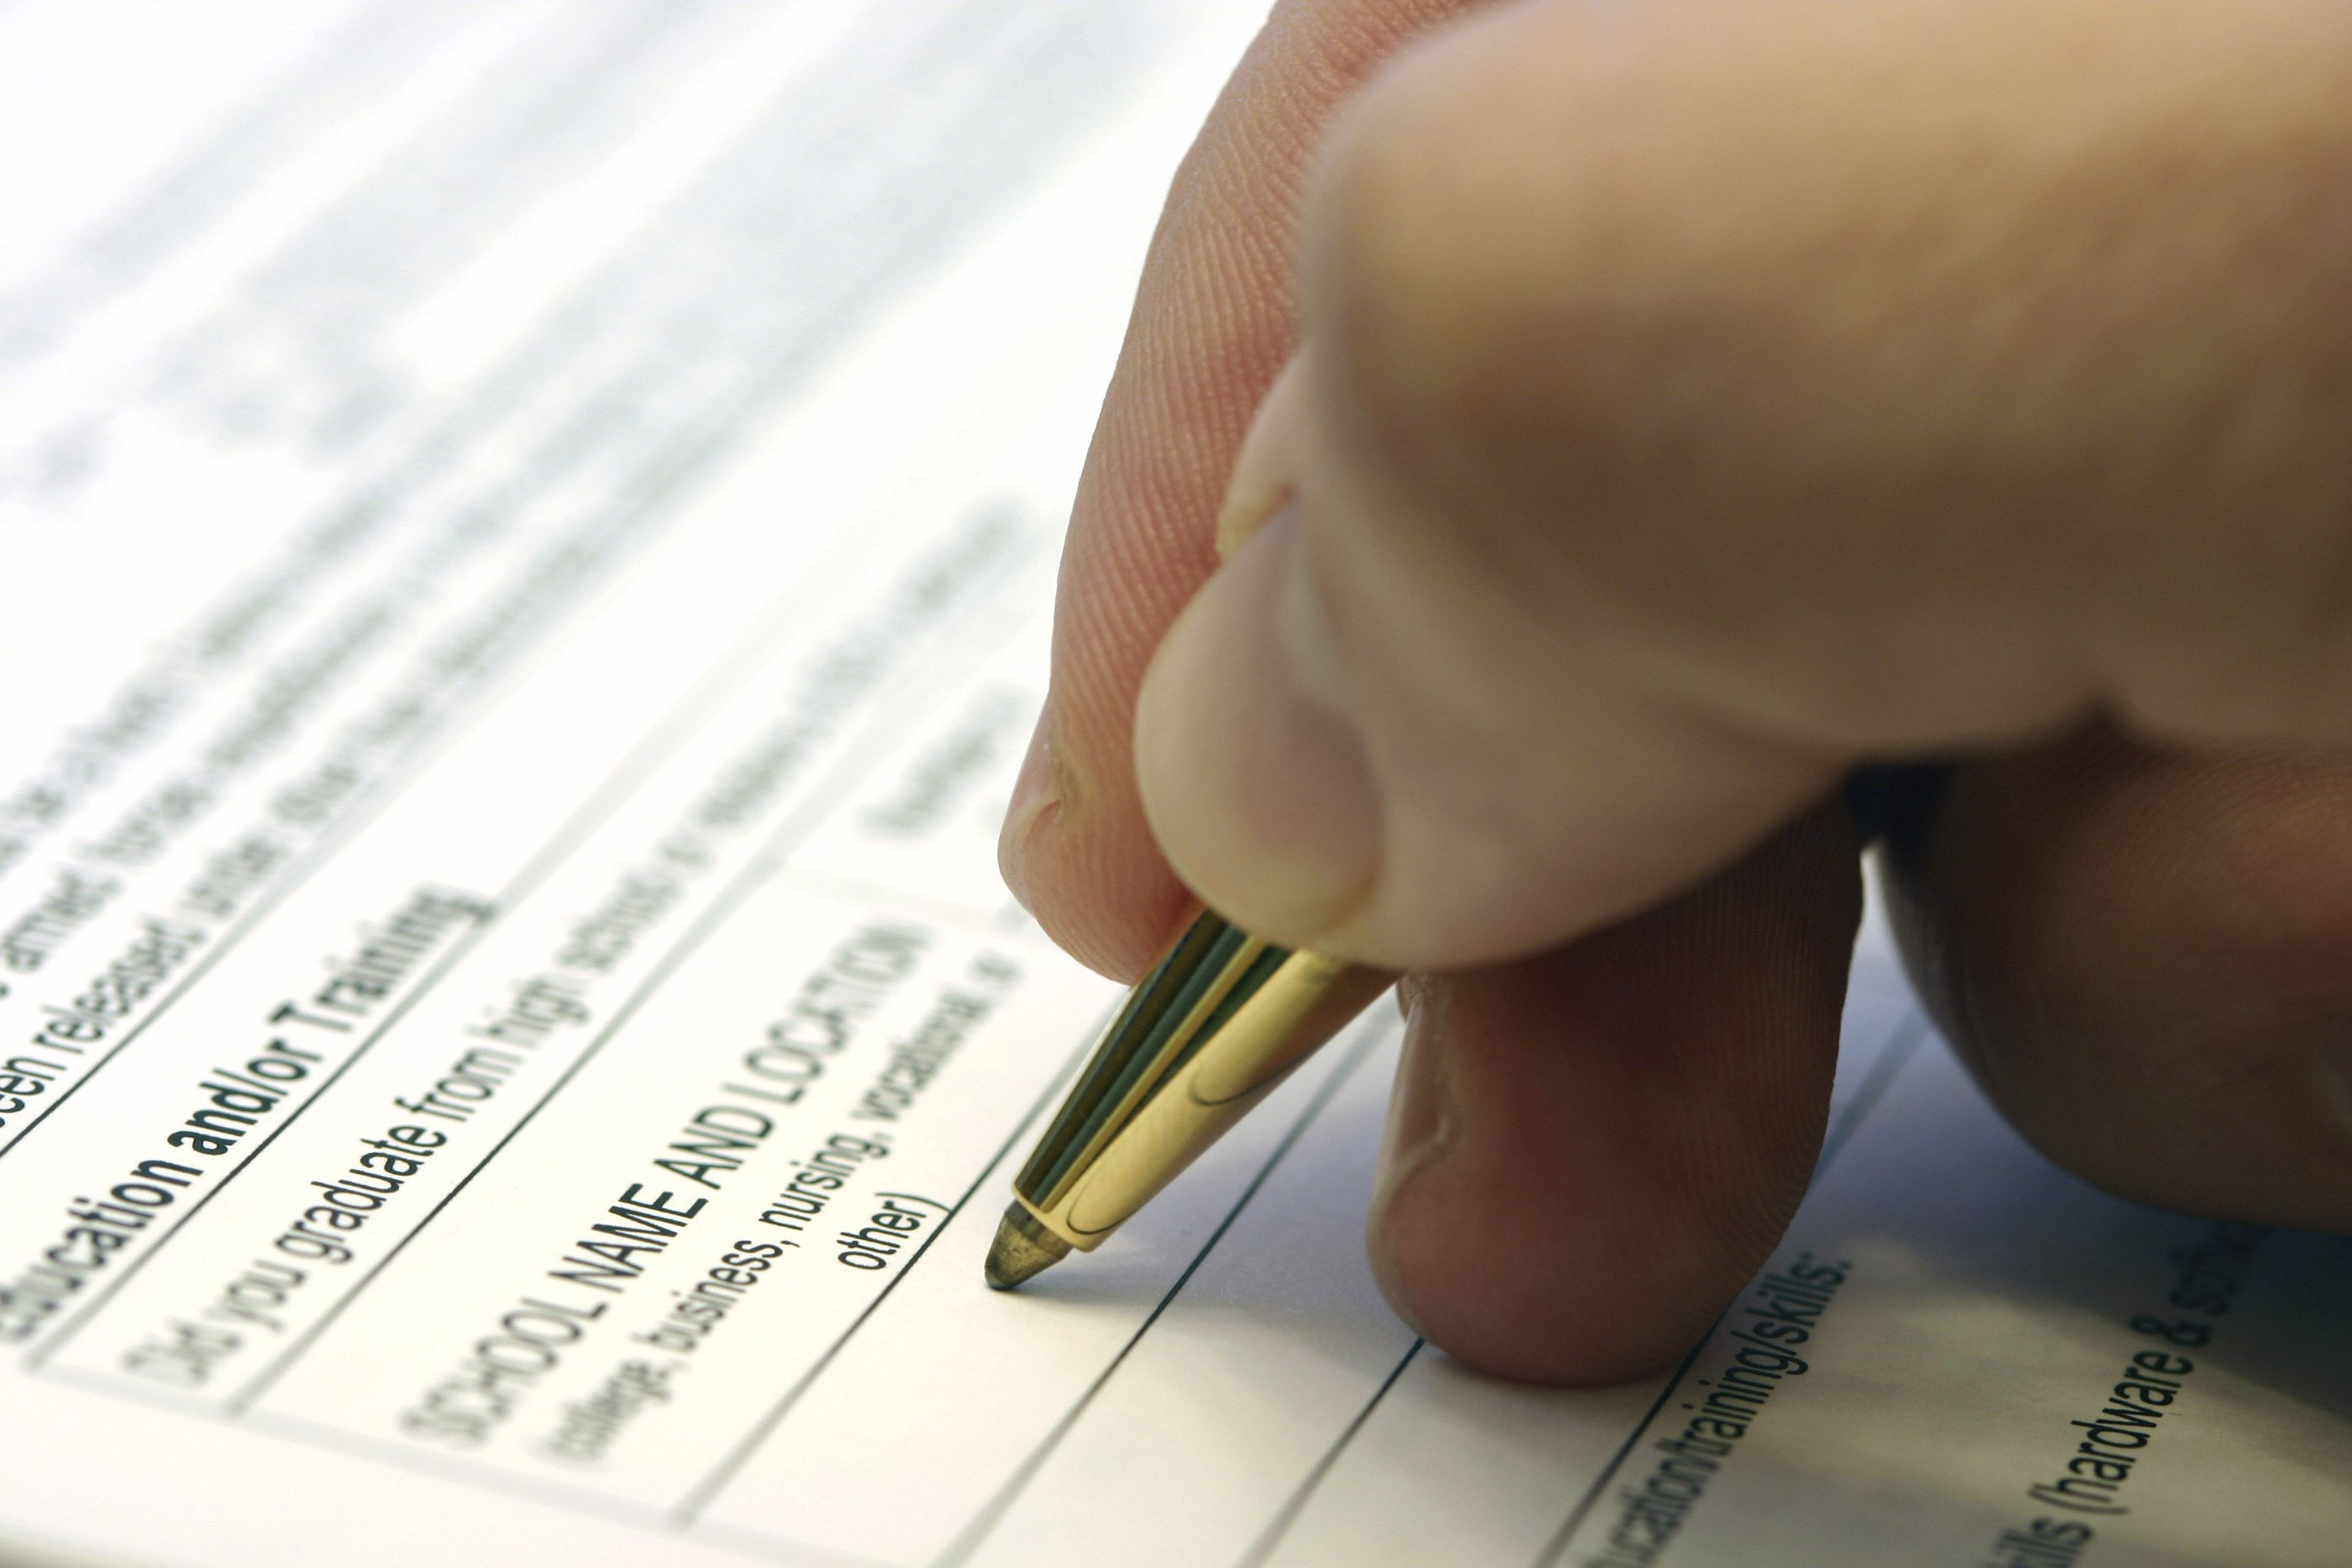 Ttc job application form image collections standard form examples should external applicants try for internal job posts here are 10 mistakes to avoid that get falaconquin